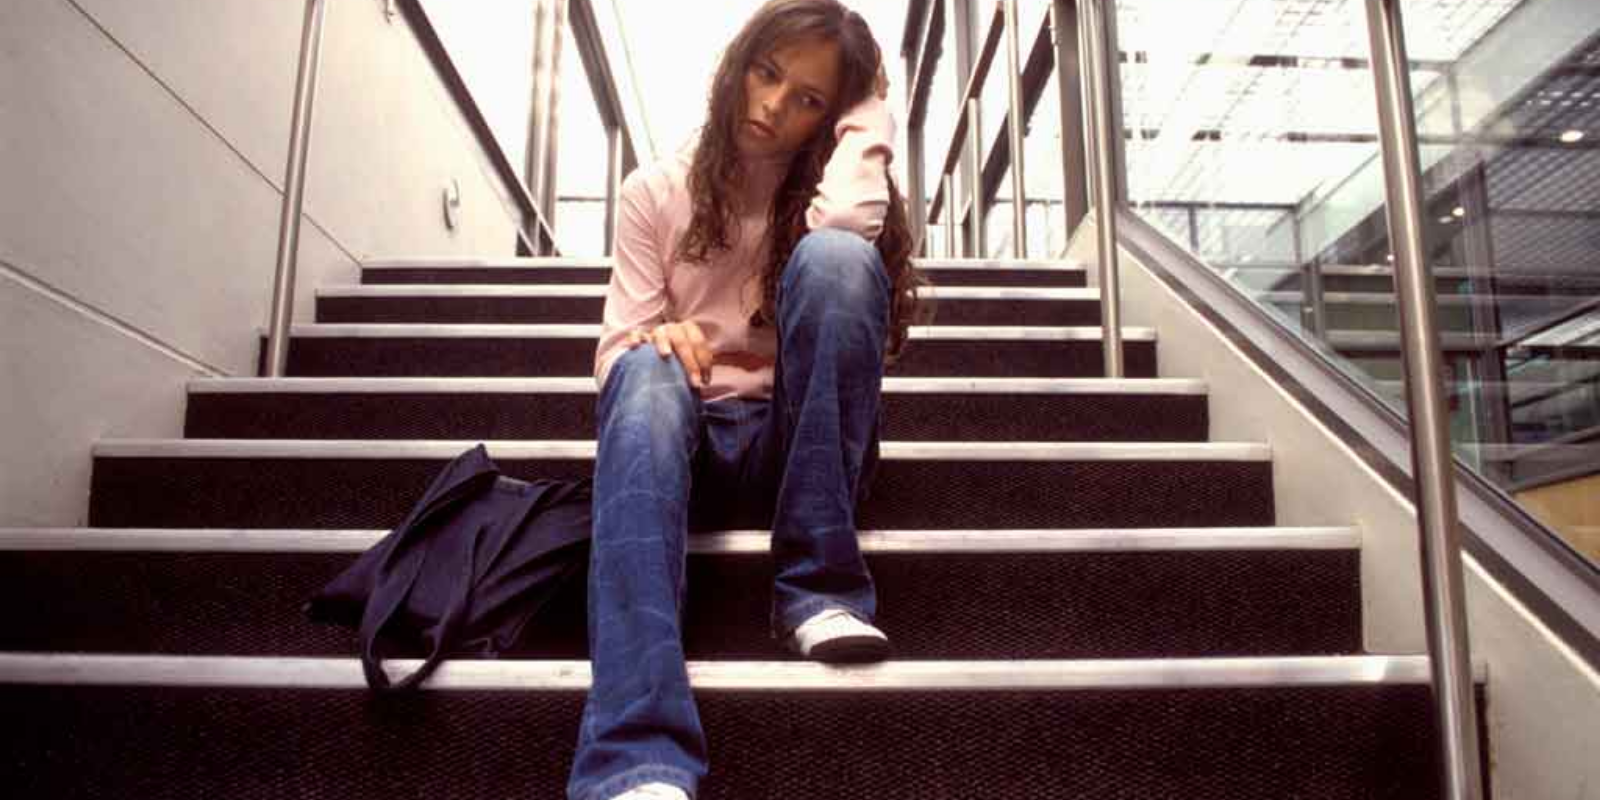 Teen girls' ER visits for suicide attempts increased 51% during pandemic: CDC report